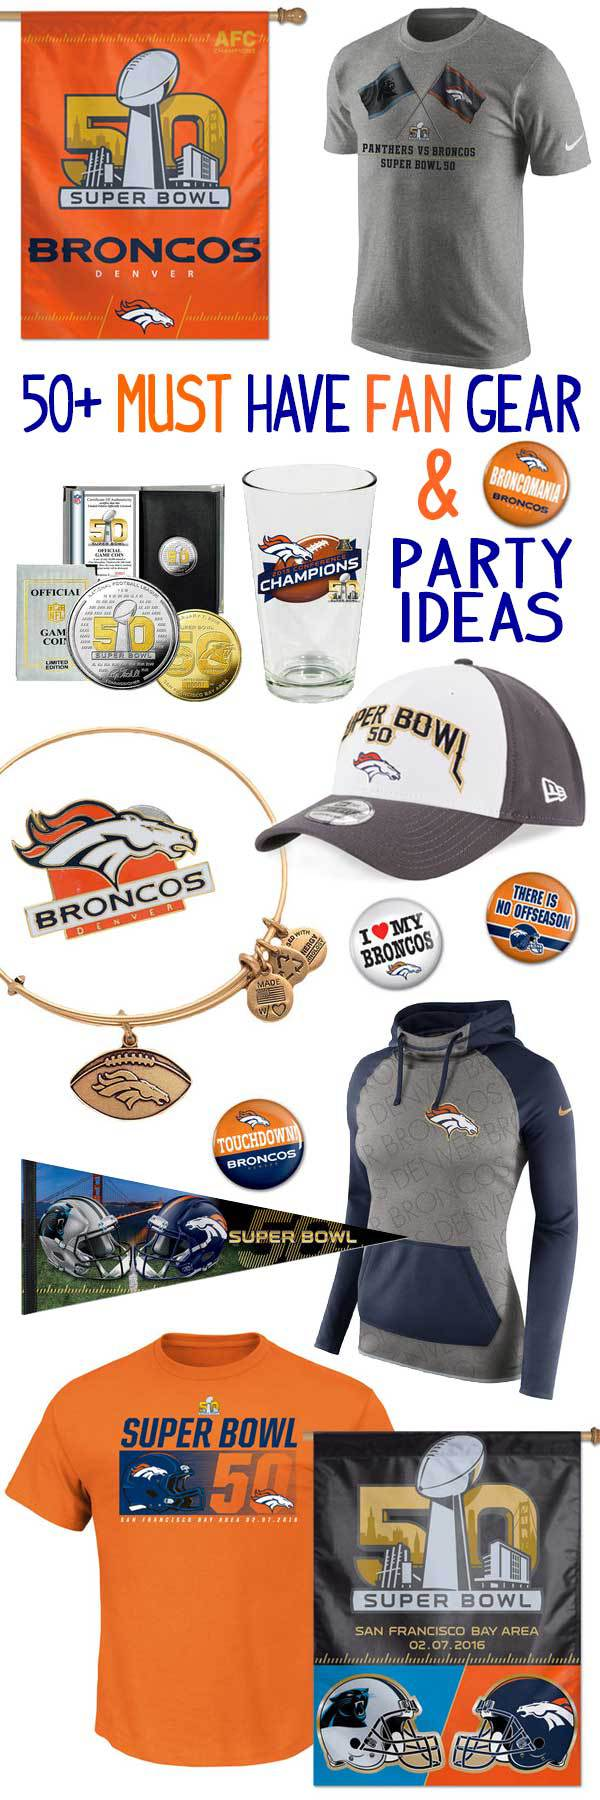 http://i2.wp.com/www.100directions.com/wp-content/uploads/2016/01/must-have-bronco-fan-gear-party-ideas.jpg?resize=600%2C1800